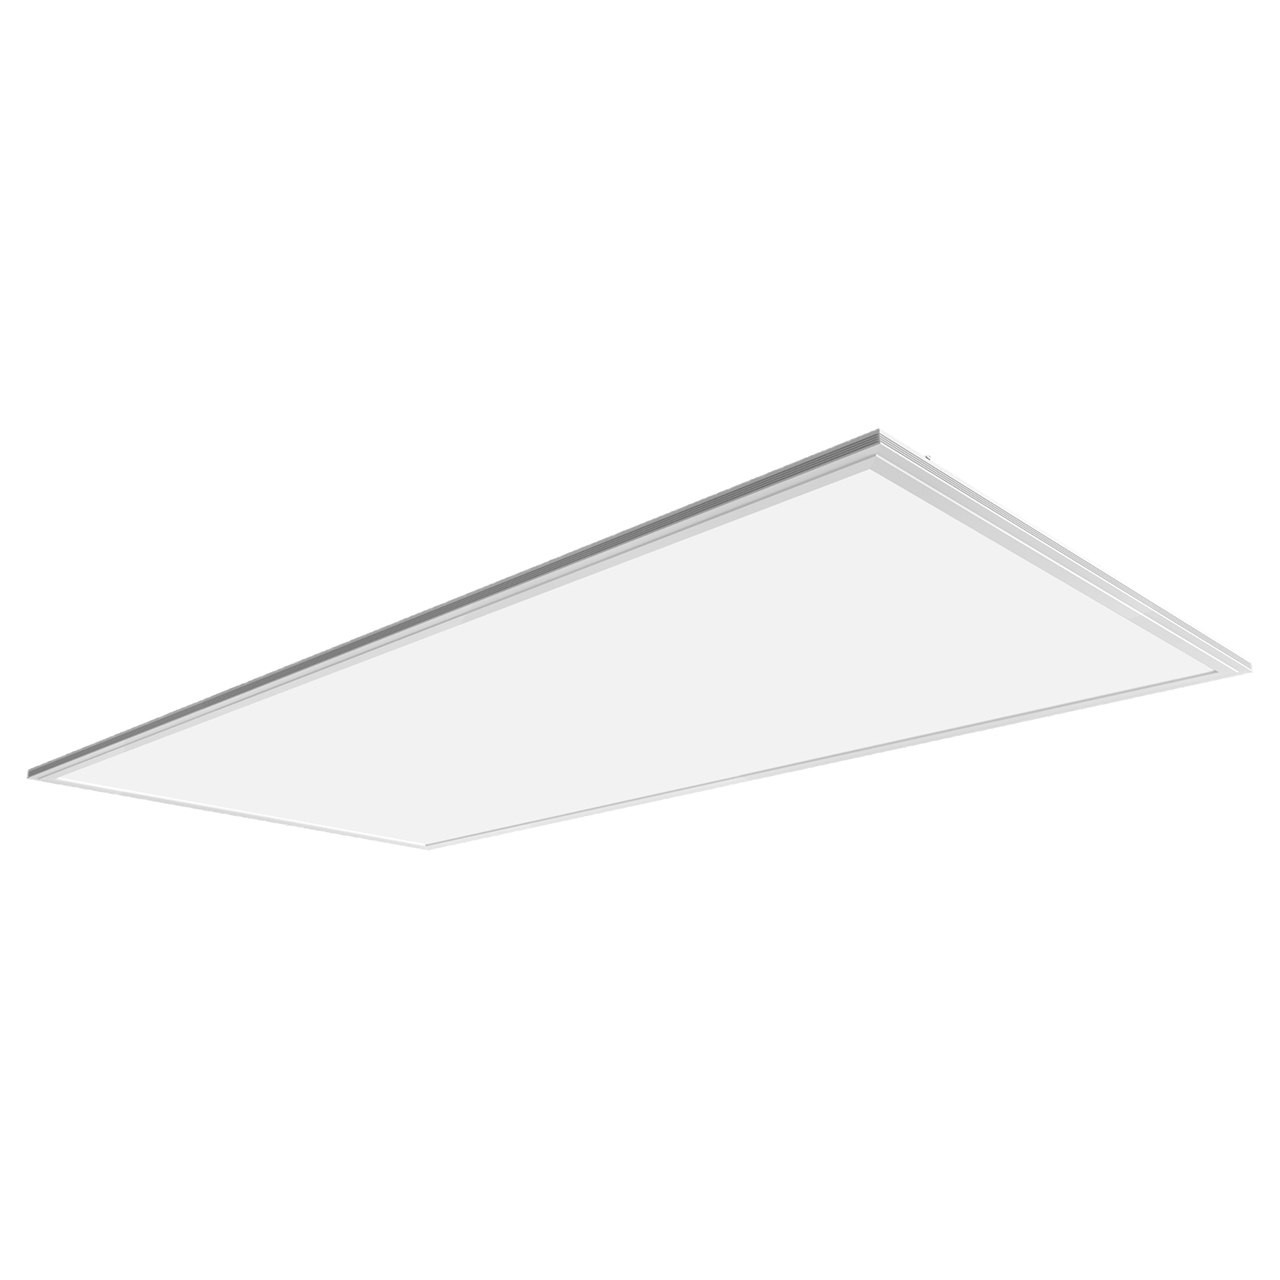 4 Foot Led Lights >> Dimmable Led Panel Light 2 Foot X 4 Foot